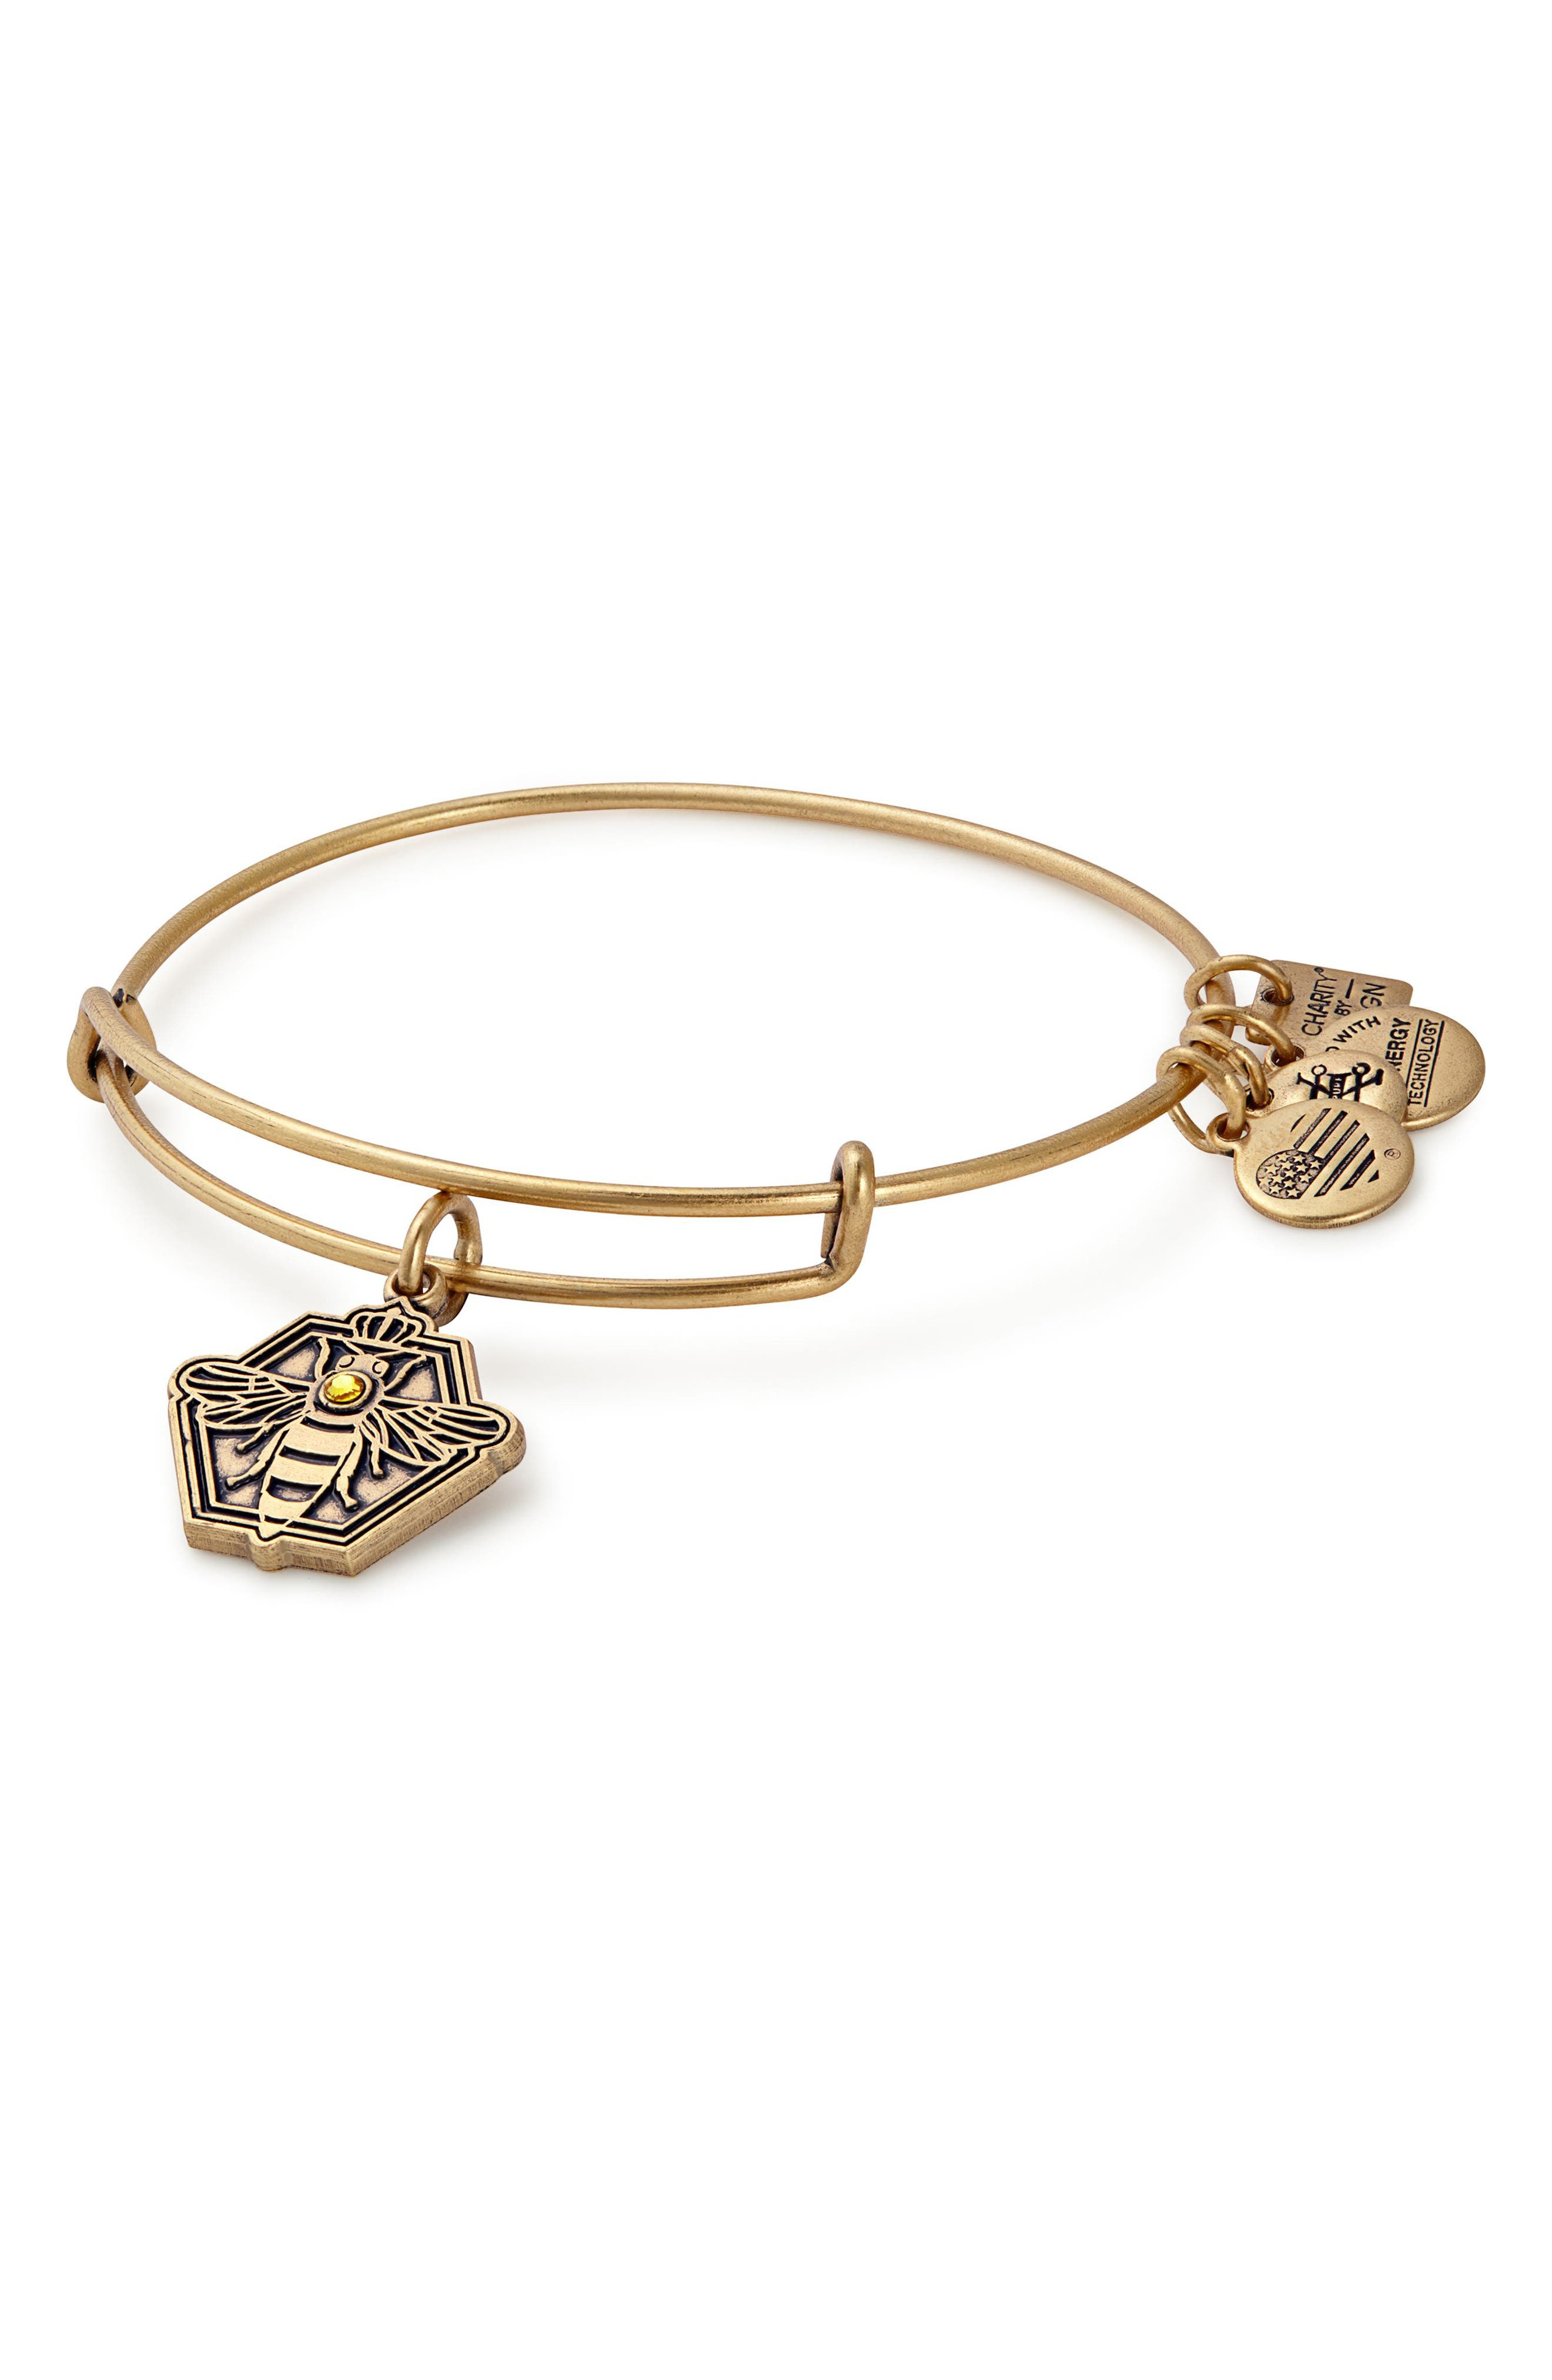 Alex and Ani Charity by Design Queen Bee Adjustable Bangle